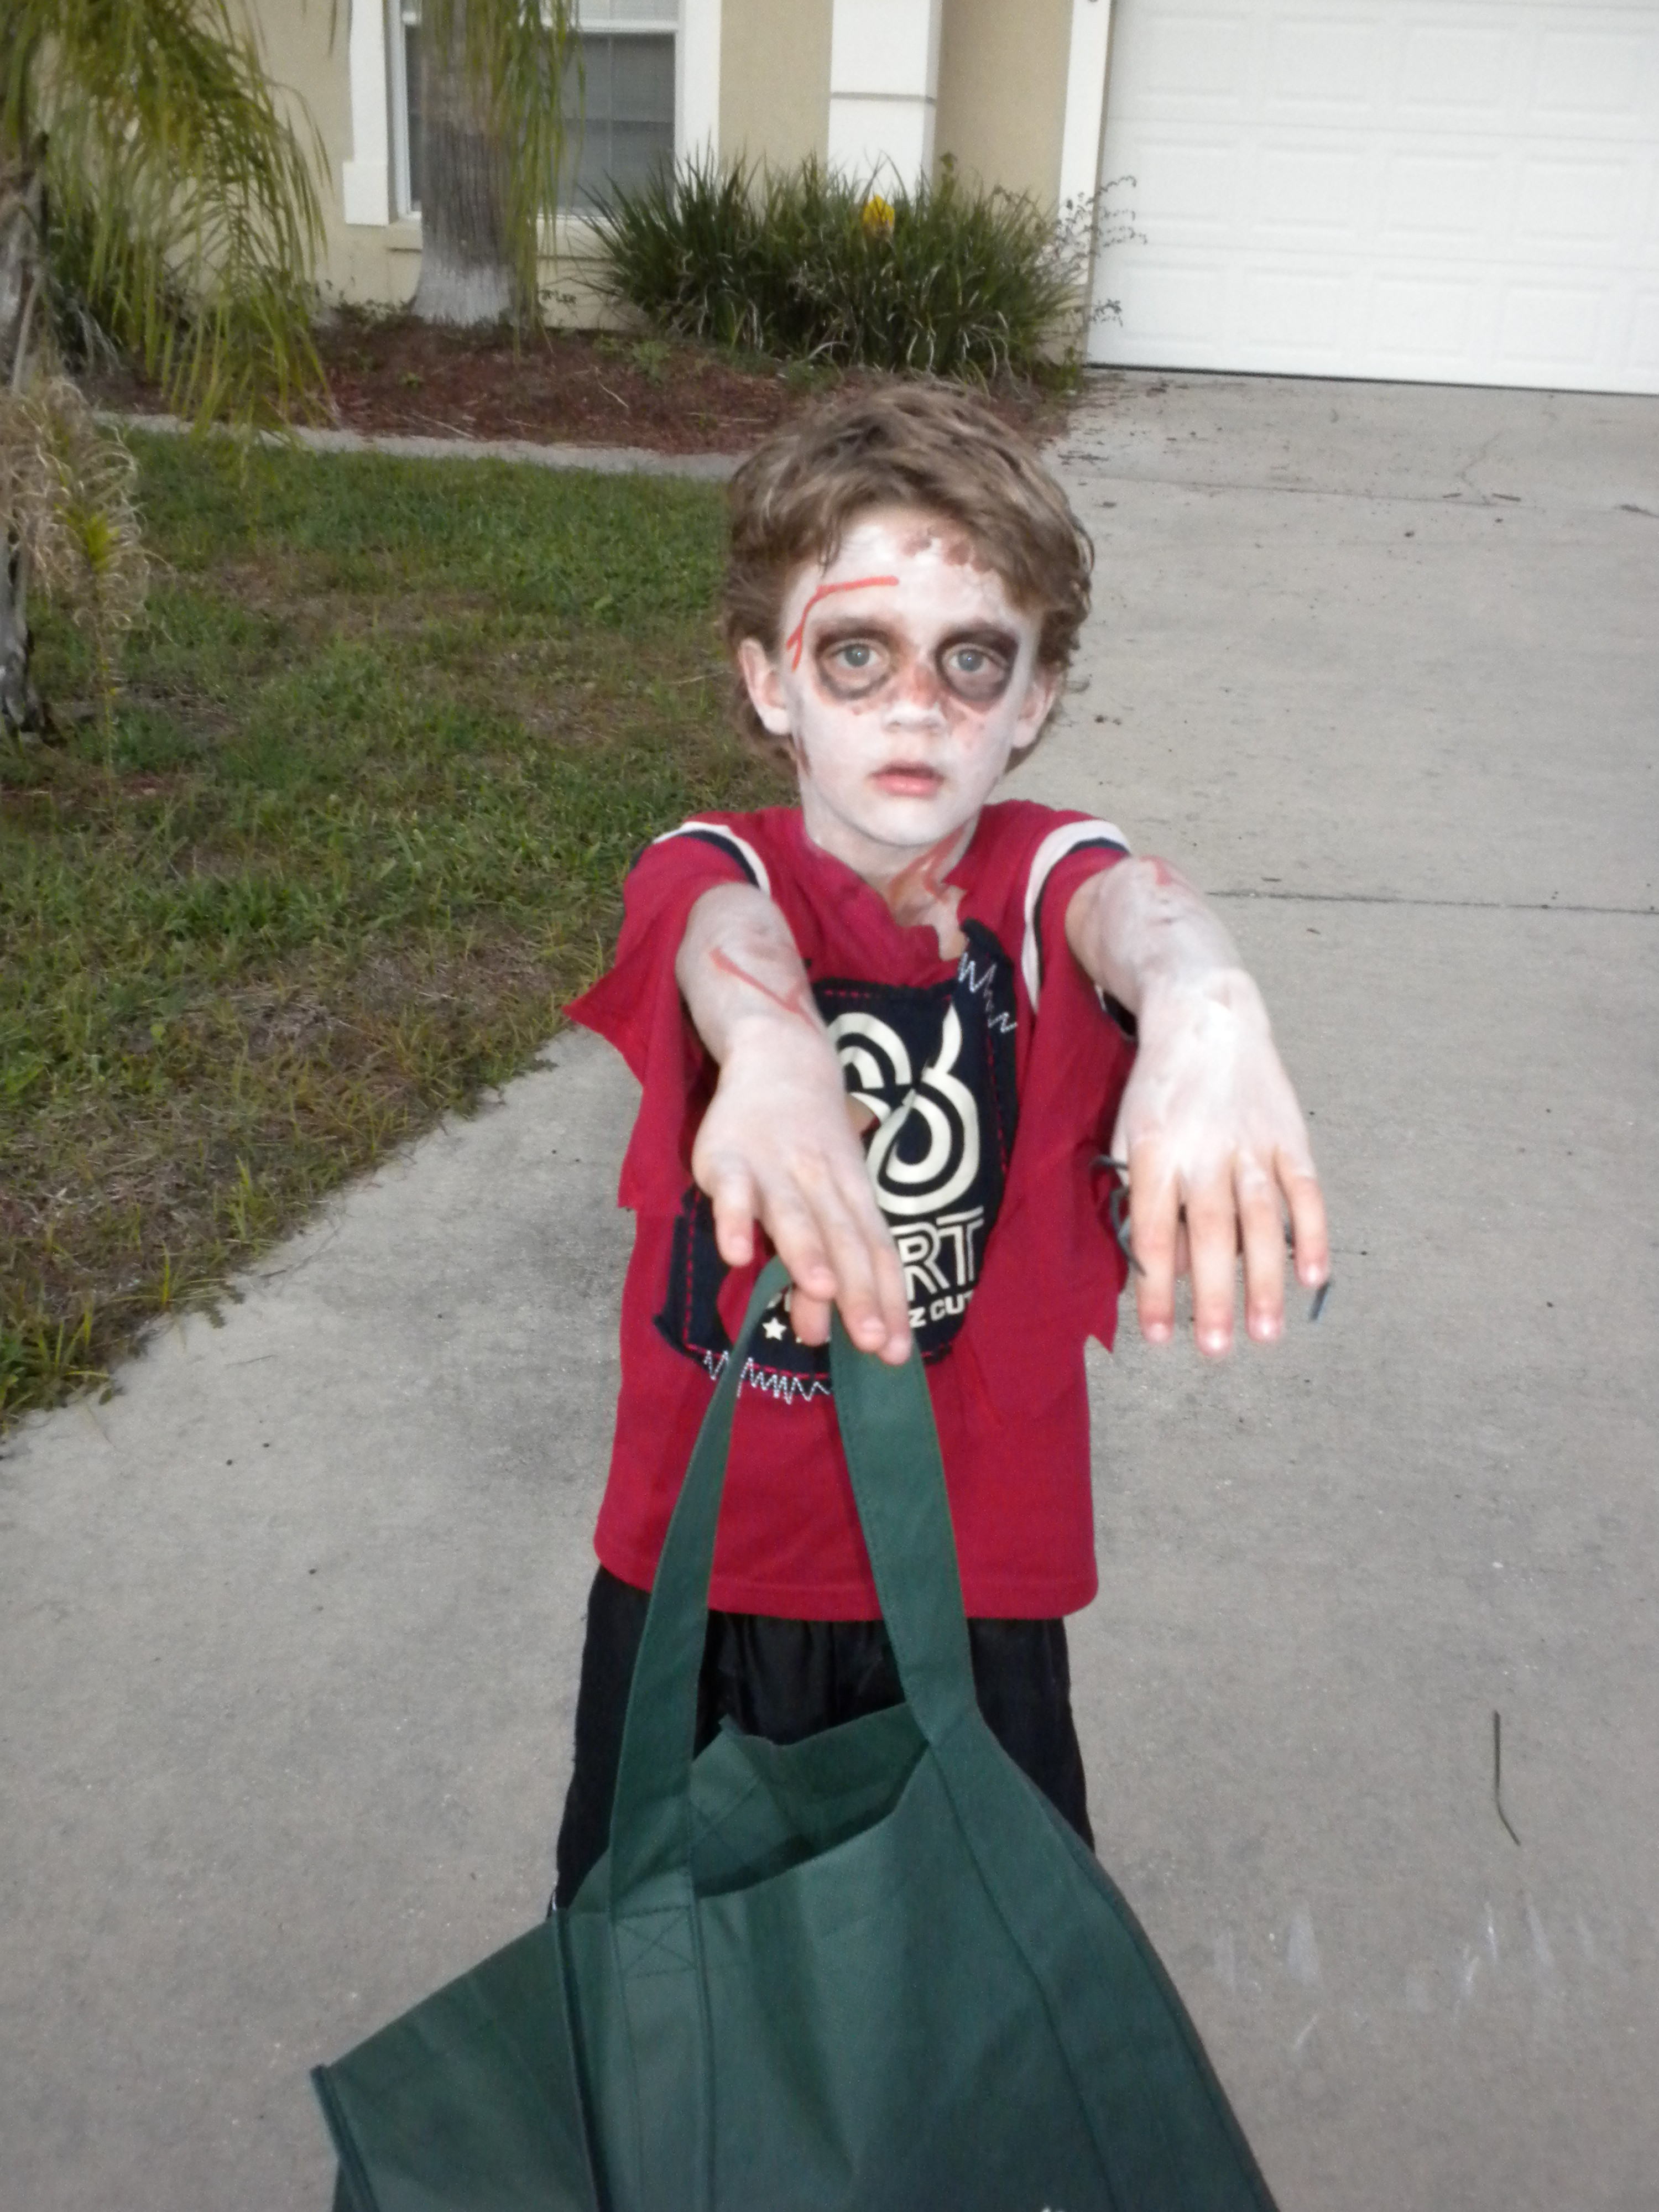 Best ideas about DIY Zombie Costume For Kids . Save or Pin 301 Moved Permanently Now.